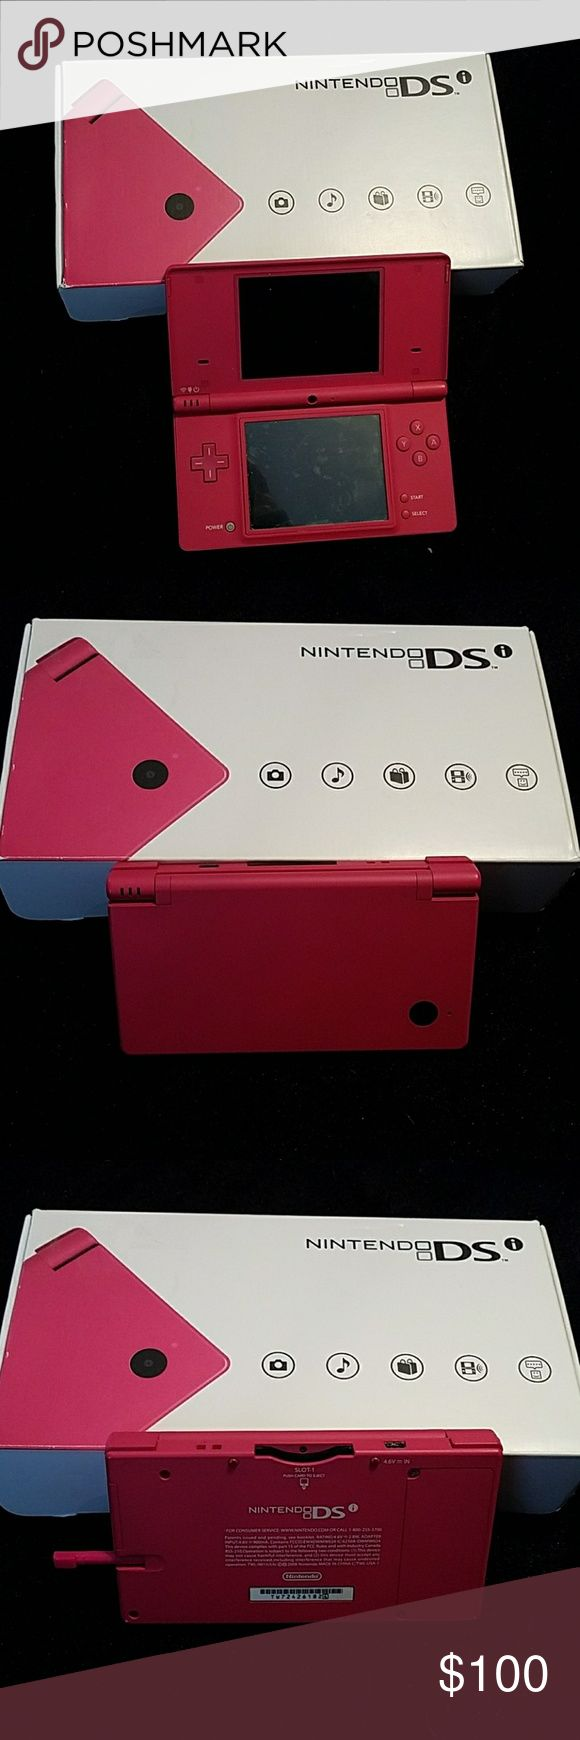 Nintendo DSI Pink Nintendo dsi with stylus. Has screen protectors on both screens. No scratches on screens. Original box included with manuals and charger. Does NOT use game boy advance games! ALSO INCLUDED~( see last two pics) 2 new screen protectors Travel case Cleaning cloth 1 extra pink stylus A stand up charging cradle  Car charger Nintendo Other